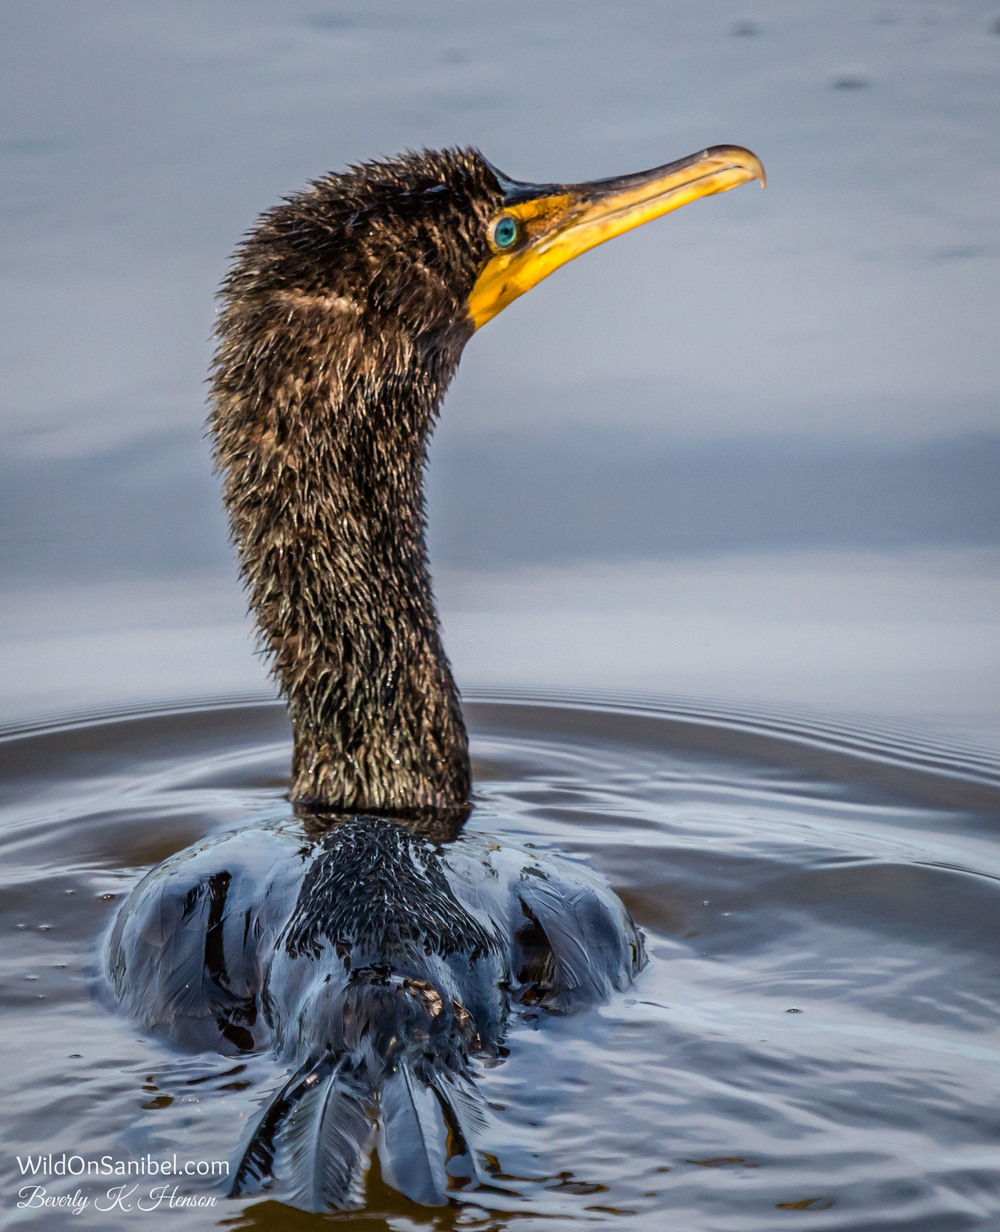 This Cormorant seemed to be having a successful dive for breakfast.